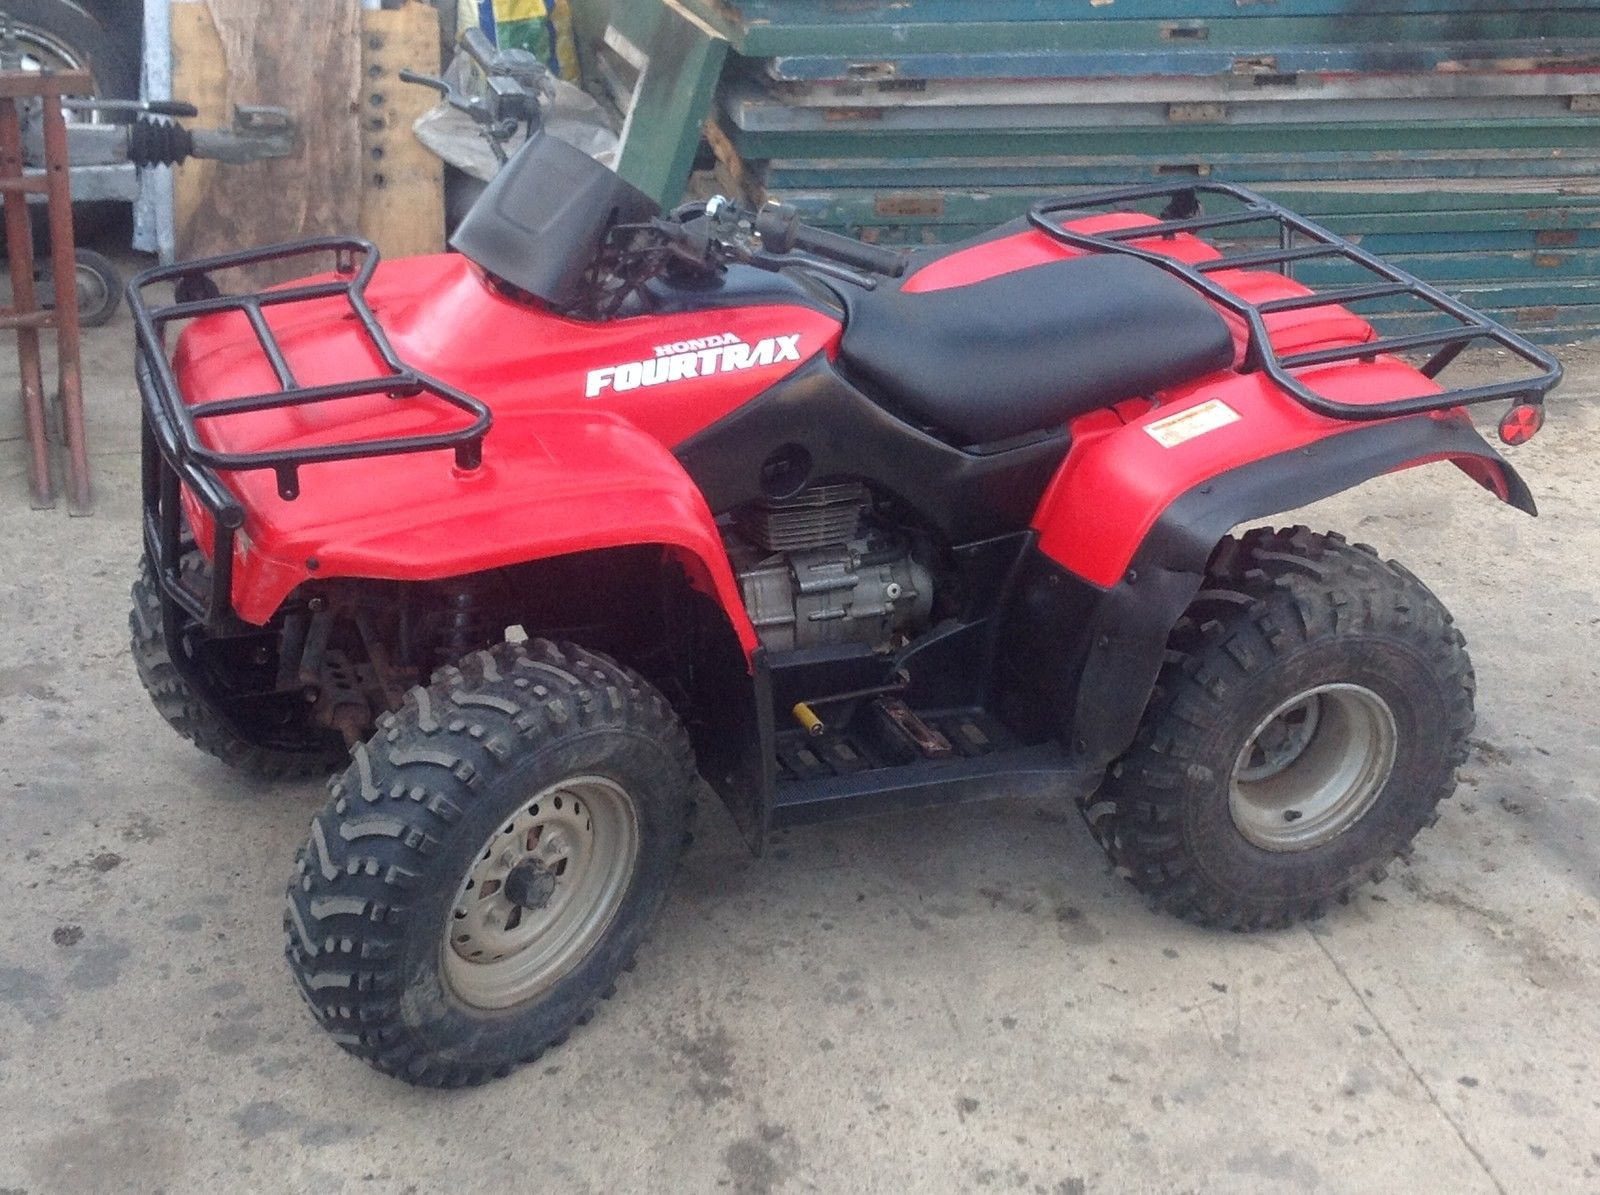 honda trx 250 farm quad atv big red fourtrax. Black Bedroom Furniture Sets. Home Design Ideas